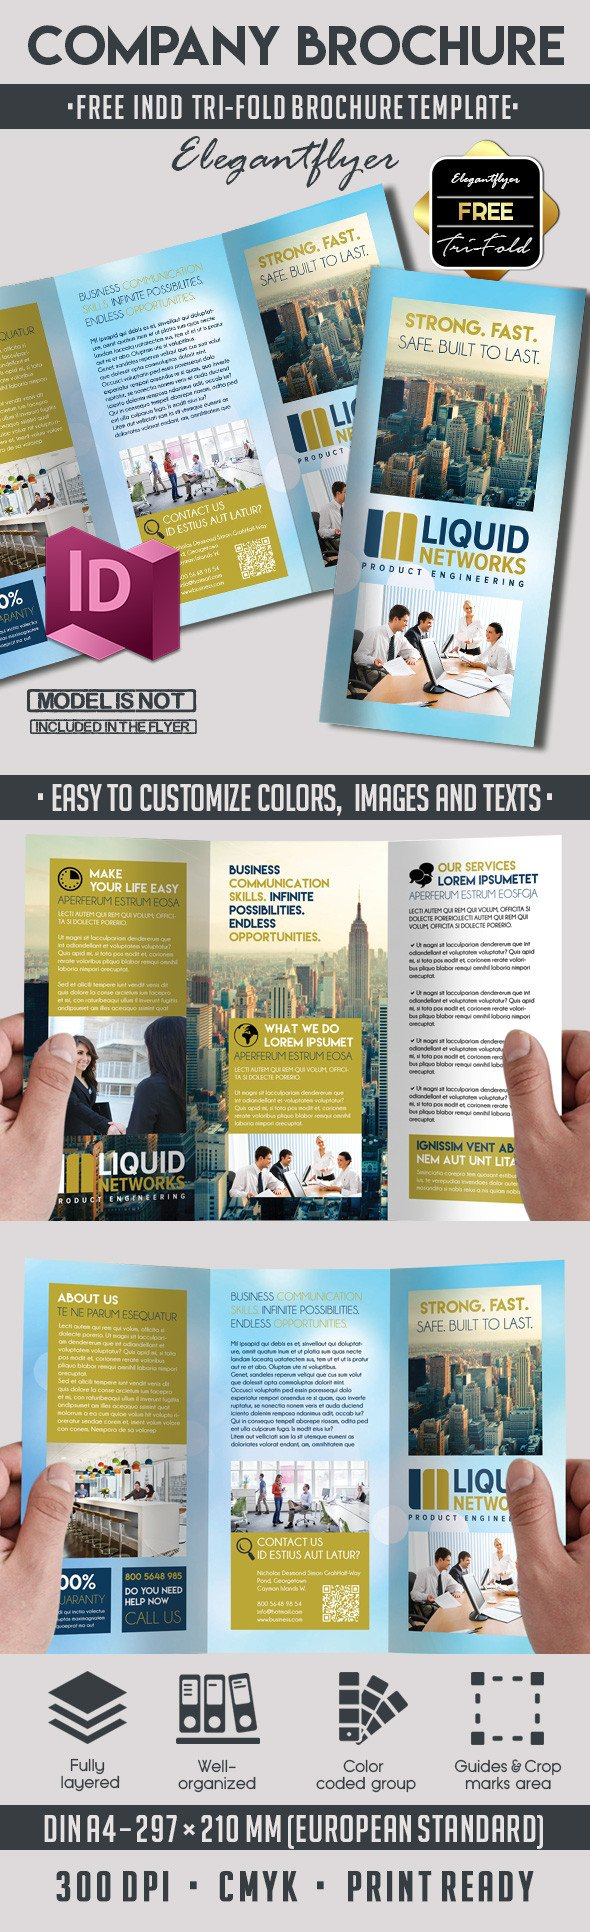 Free Indesign Flyer Templates 5 Powerful Free Adobe Indesign Brochures Templates – by